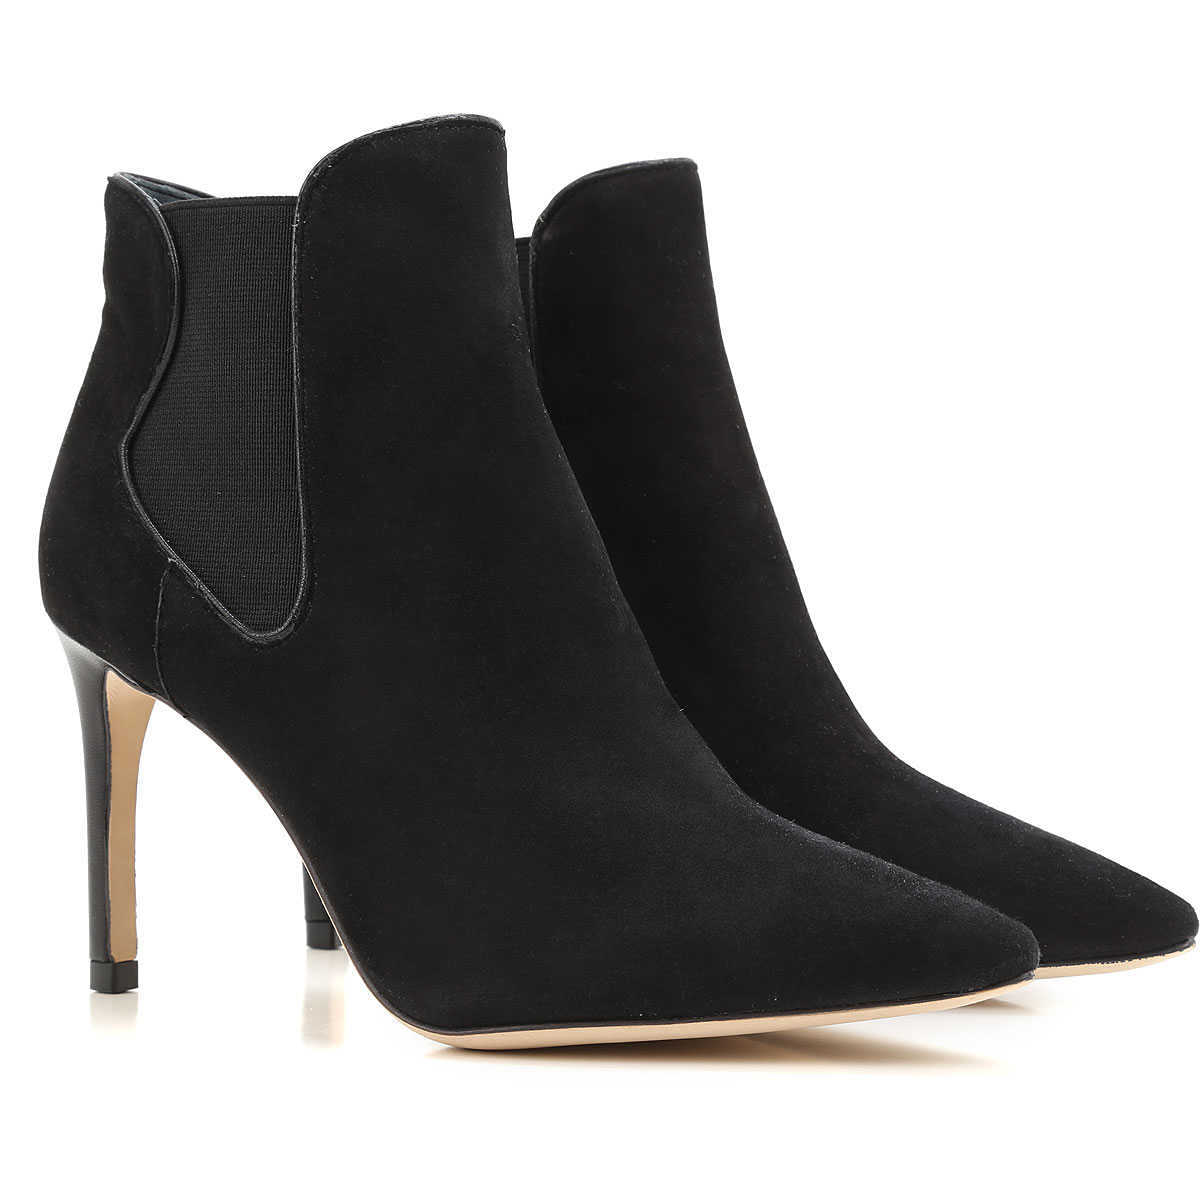 Tory Burch Boots for Women Booties On Sale in Outlet Canada - GOOFASH - Womens BOOTS